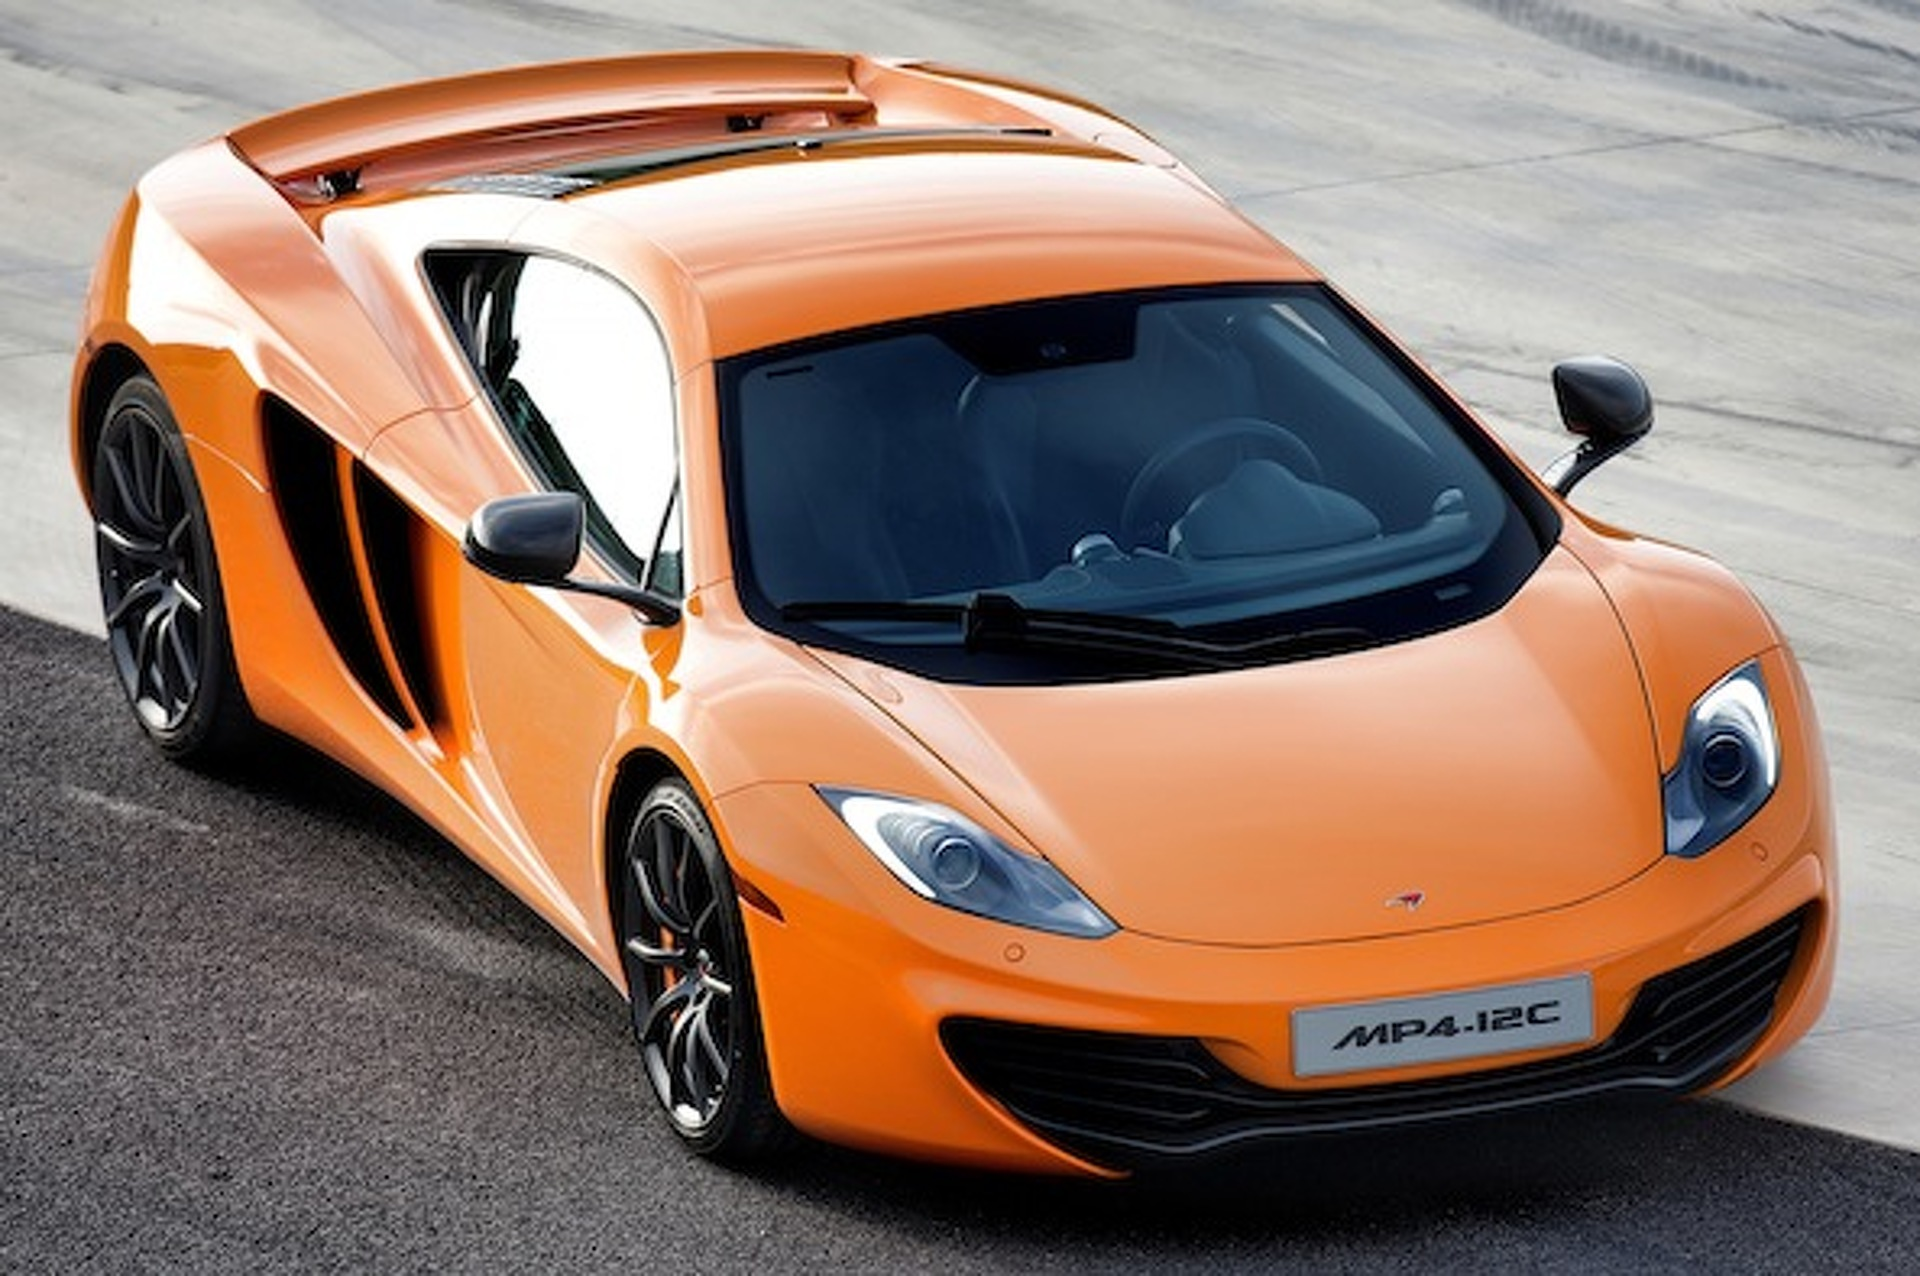 McLaren Ditching Windshield Wipers for Ultrasonic Forcefield